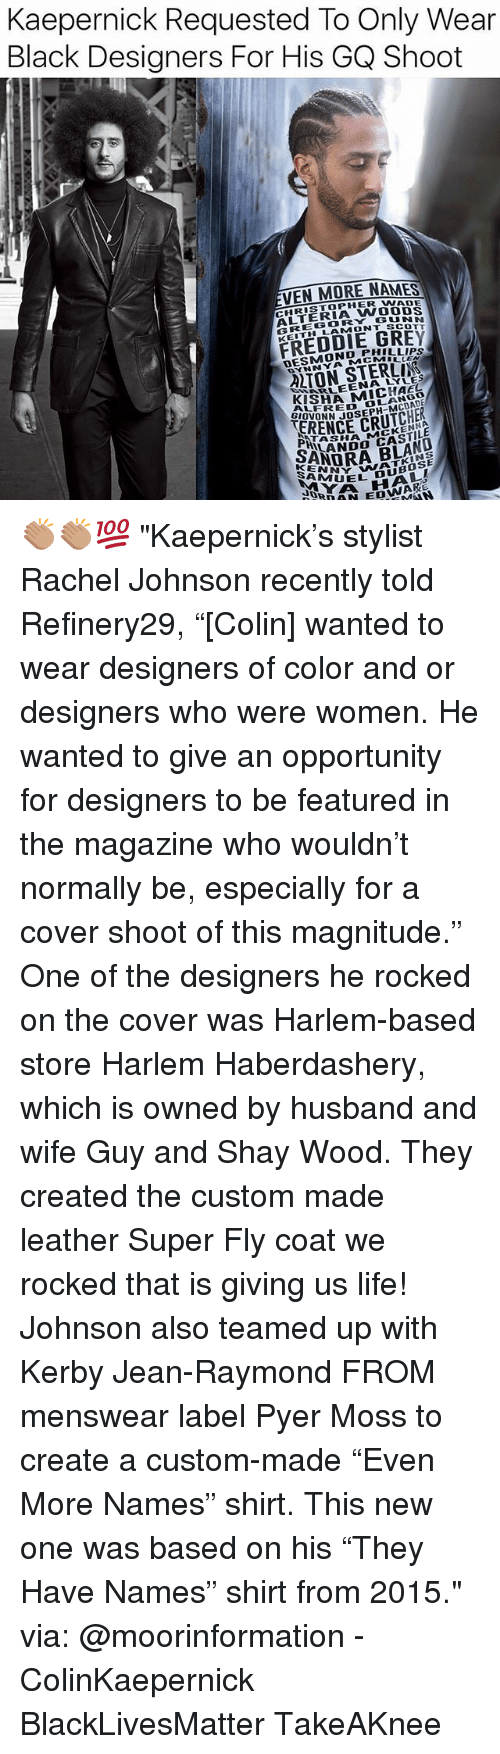 """Ash, Black Lives Matter, and Life: Kaepernick Requested To Only Wear  Black Designers For His GQ Shoot  VEN MORE NAMES  CHRISTOPHER WADE  ALTERIA WOOUS  GREGORY GUNN  KEITH LAMONT SCOTT  FREDDIE GREY  DESMOND PHILLIPS  MCMILLEN  YNNYAM  ARLEENA LYLES  GIOVONN JOSEPH-A  ASH  SALANDO ASTILA  ANNY WATKINS  UEL DUBOSE  N EDWAR 👏🏽👏🏽💯 """"Kaepernick's stylist Rachel Johnson recently told Refinery29, """"[Colin] wanted to wear designers of color and or designers who were women. He wanted to give an opportunity for designers to be featured in the magazine who wouldn't normally be, especially for a cover shoot of this magnitude."""" One of the designers he rocked on the cover was Harlem-based store Harlem Haberdashery, which is owned by husband and wife Guy and Shay Wood. They created the custom made leather Super Fly coat we rocked that is giving us life! Johnson also teamed up with Kerby Jean-Raymond FROM menswear label Pyer Moss to create a custom-made """"Even More Names"""" shirt. This new one was based on his """"They Have Names"""" shirt from 2015."""" via: @moorinformation - ColinKaepernick BlackLivesMatter TakeAKnee"""